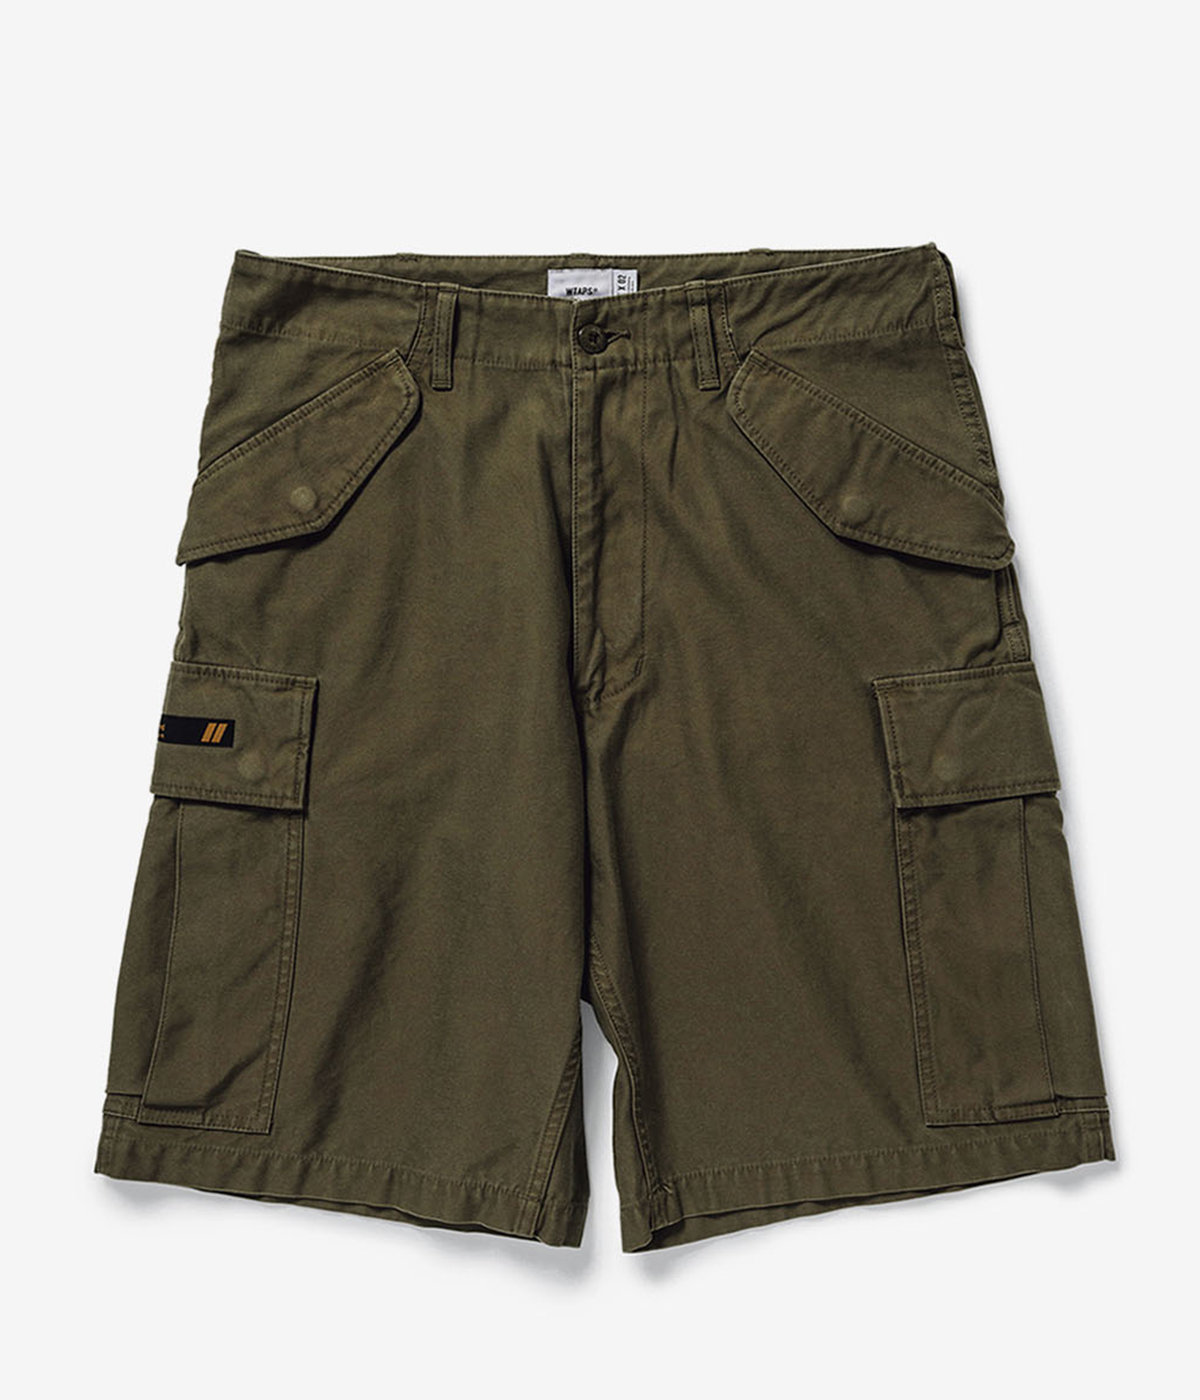 CARGO SHORTS 01 / TROUSERS. COTTON. SATIN